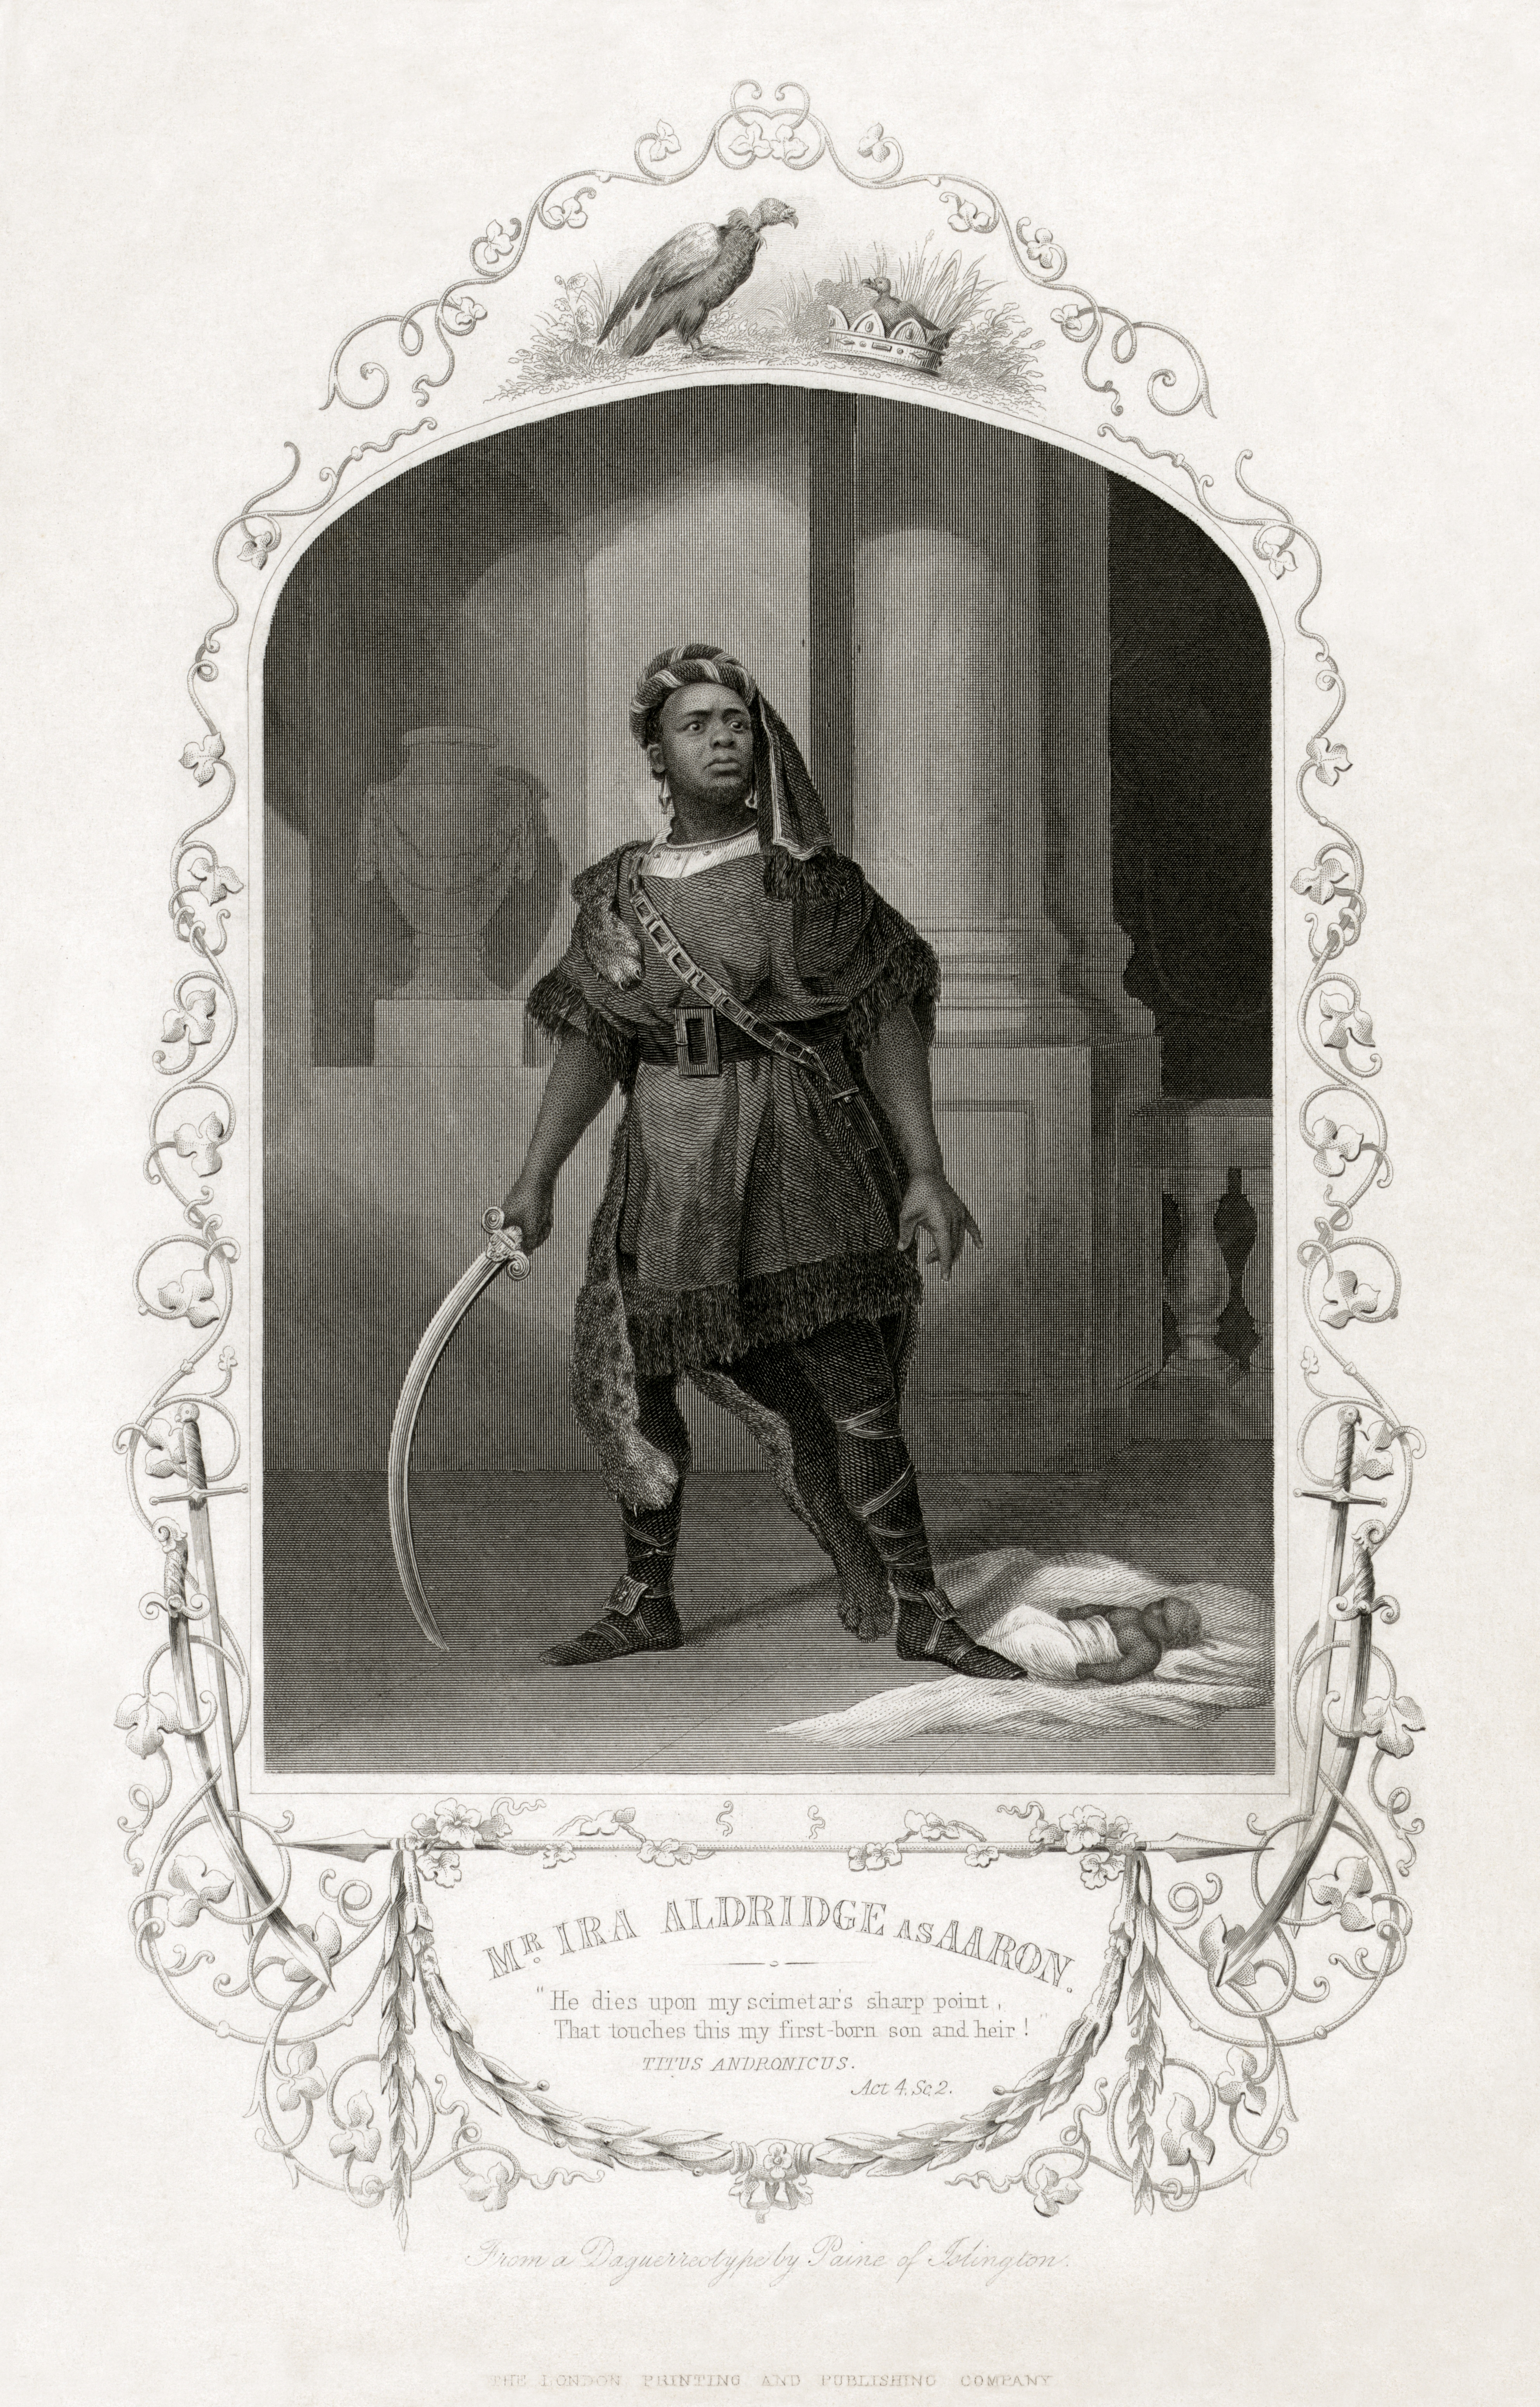 <b>Titus Andronicus</b>     	</br>Ira Aldridge as Aaron in Shakespeare&#39;s Titus Andronicus, Britannia Theatre, Hoxton, c.a.1852</br><br/><b>Source: </b><i>Mr. Ira Aldridge as Aaron (Call number: LOT 8521 [item] [P&amp;P] BIOG FILE - Aldridge, Ira Frederick, d. 1887.), [1852?], Library of Congress Prints and Photographs Division, Library of Congress, http://www.loc.gov/pictures/item/99471607/</i>